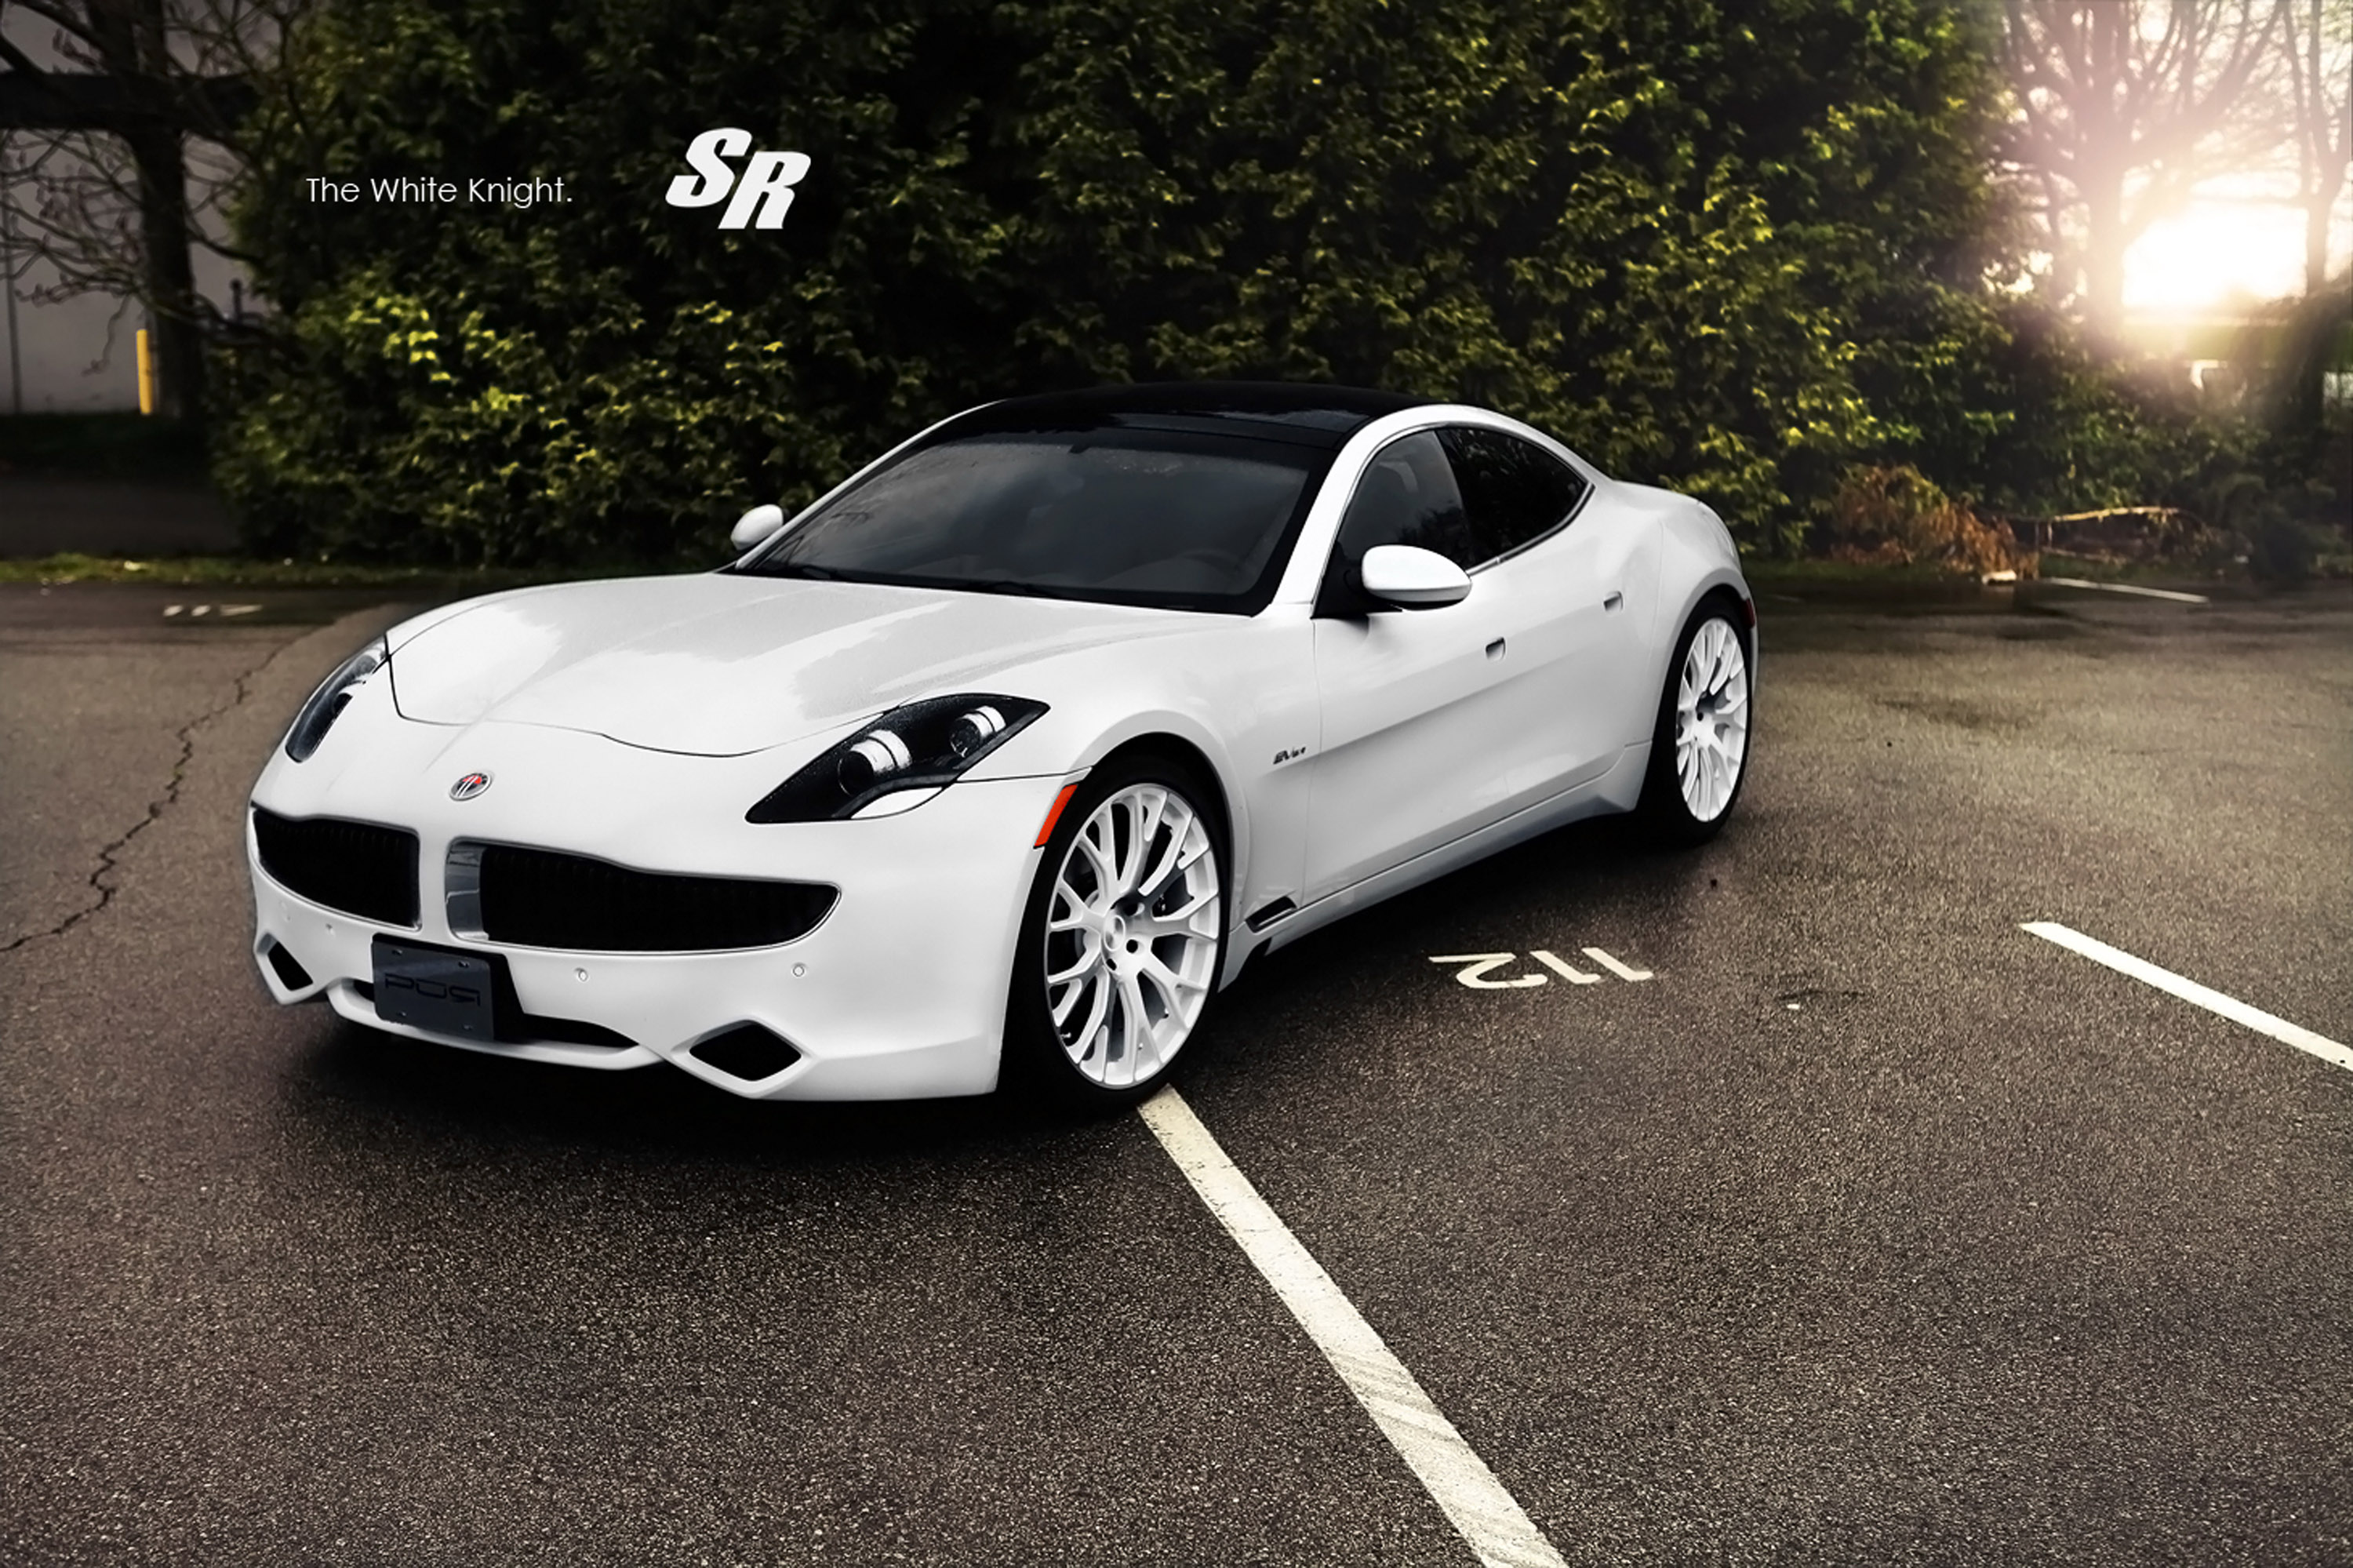 2012 Sr Fisker Karma Es The Debut Of The White Knight